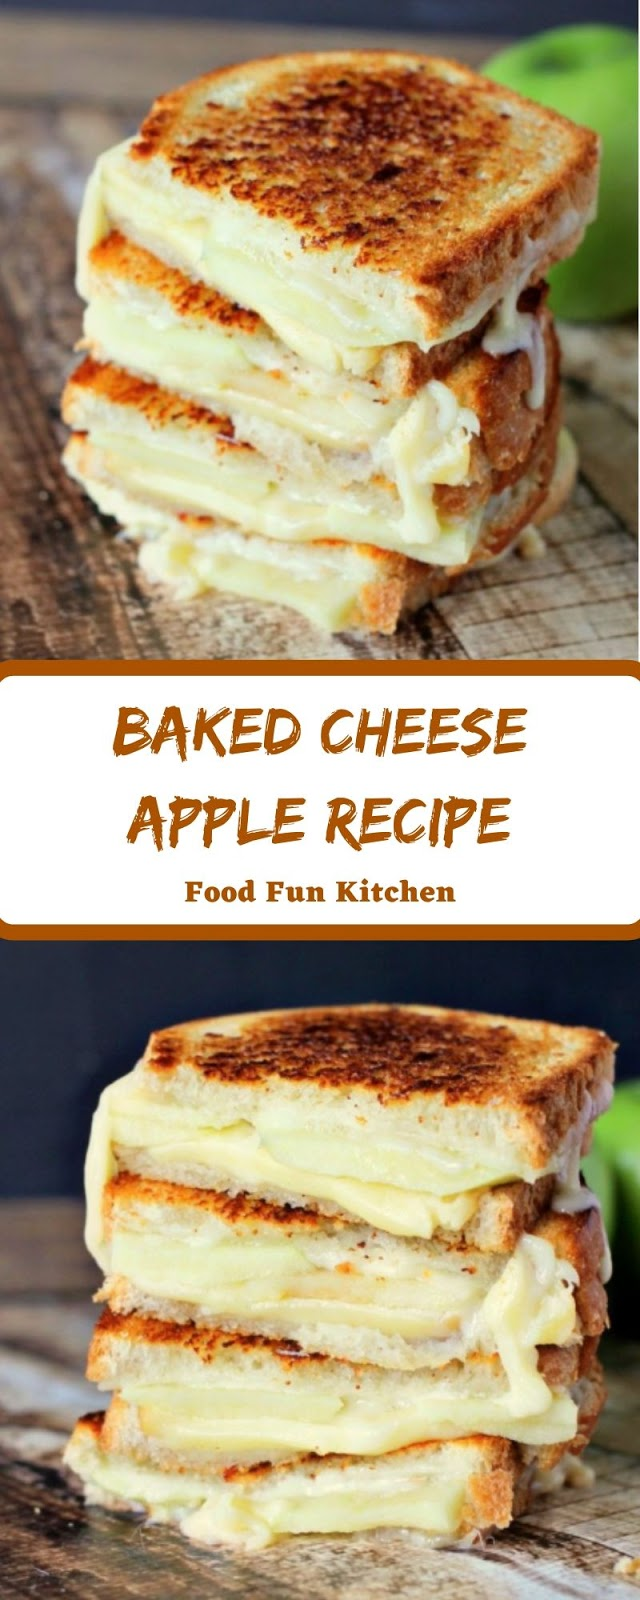 BAKED CHEESE APPLE RECIPE